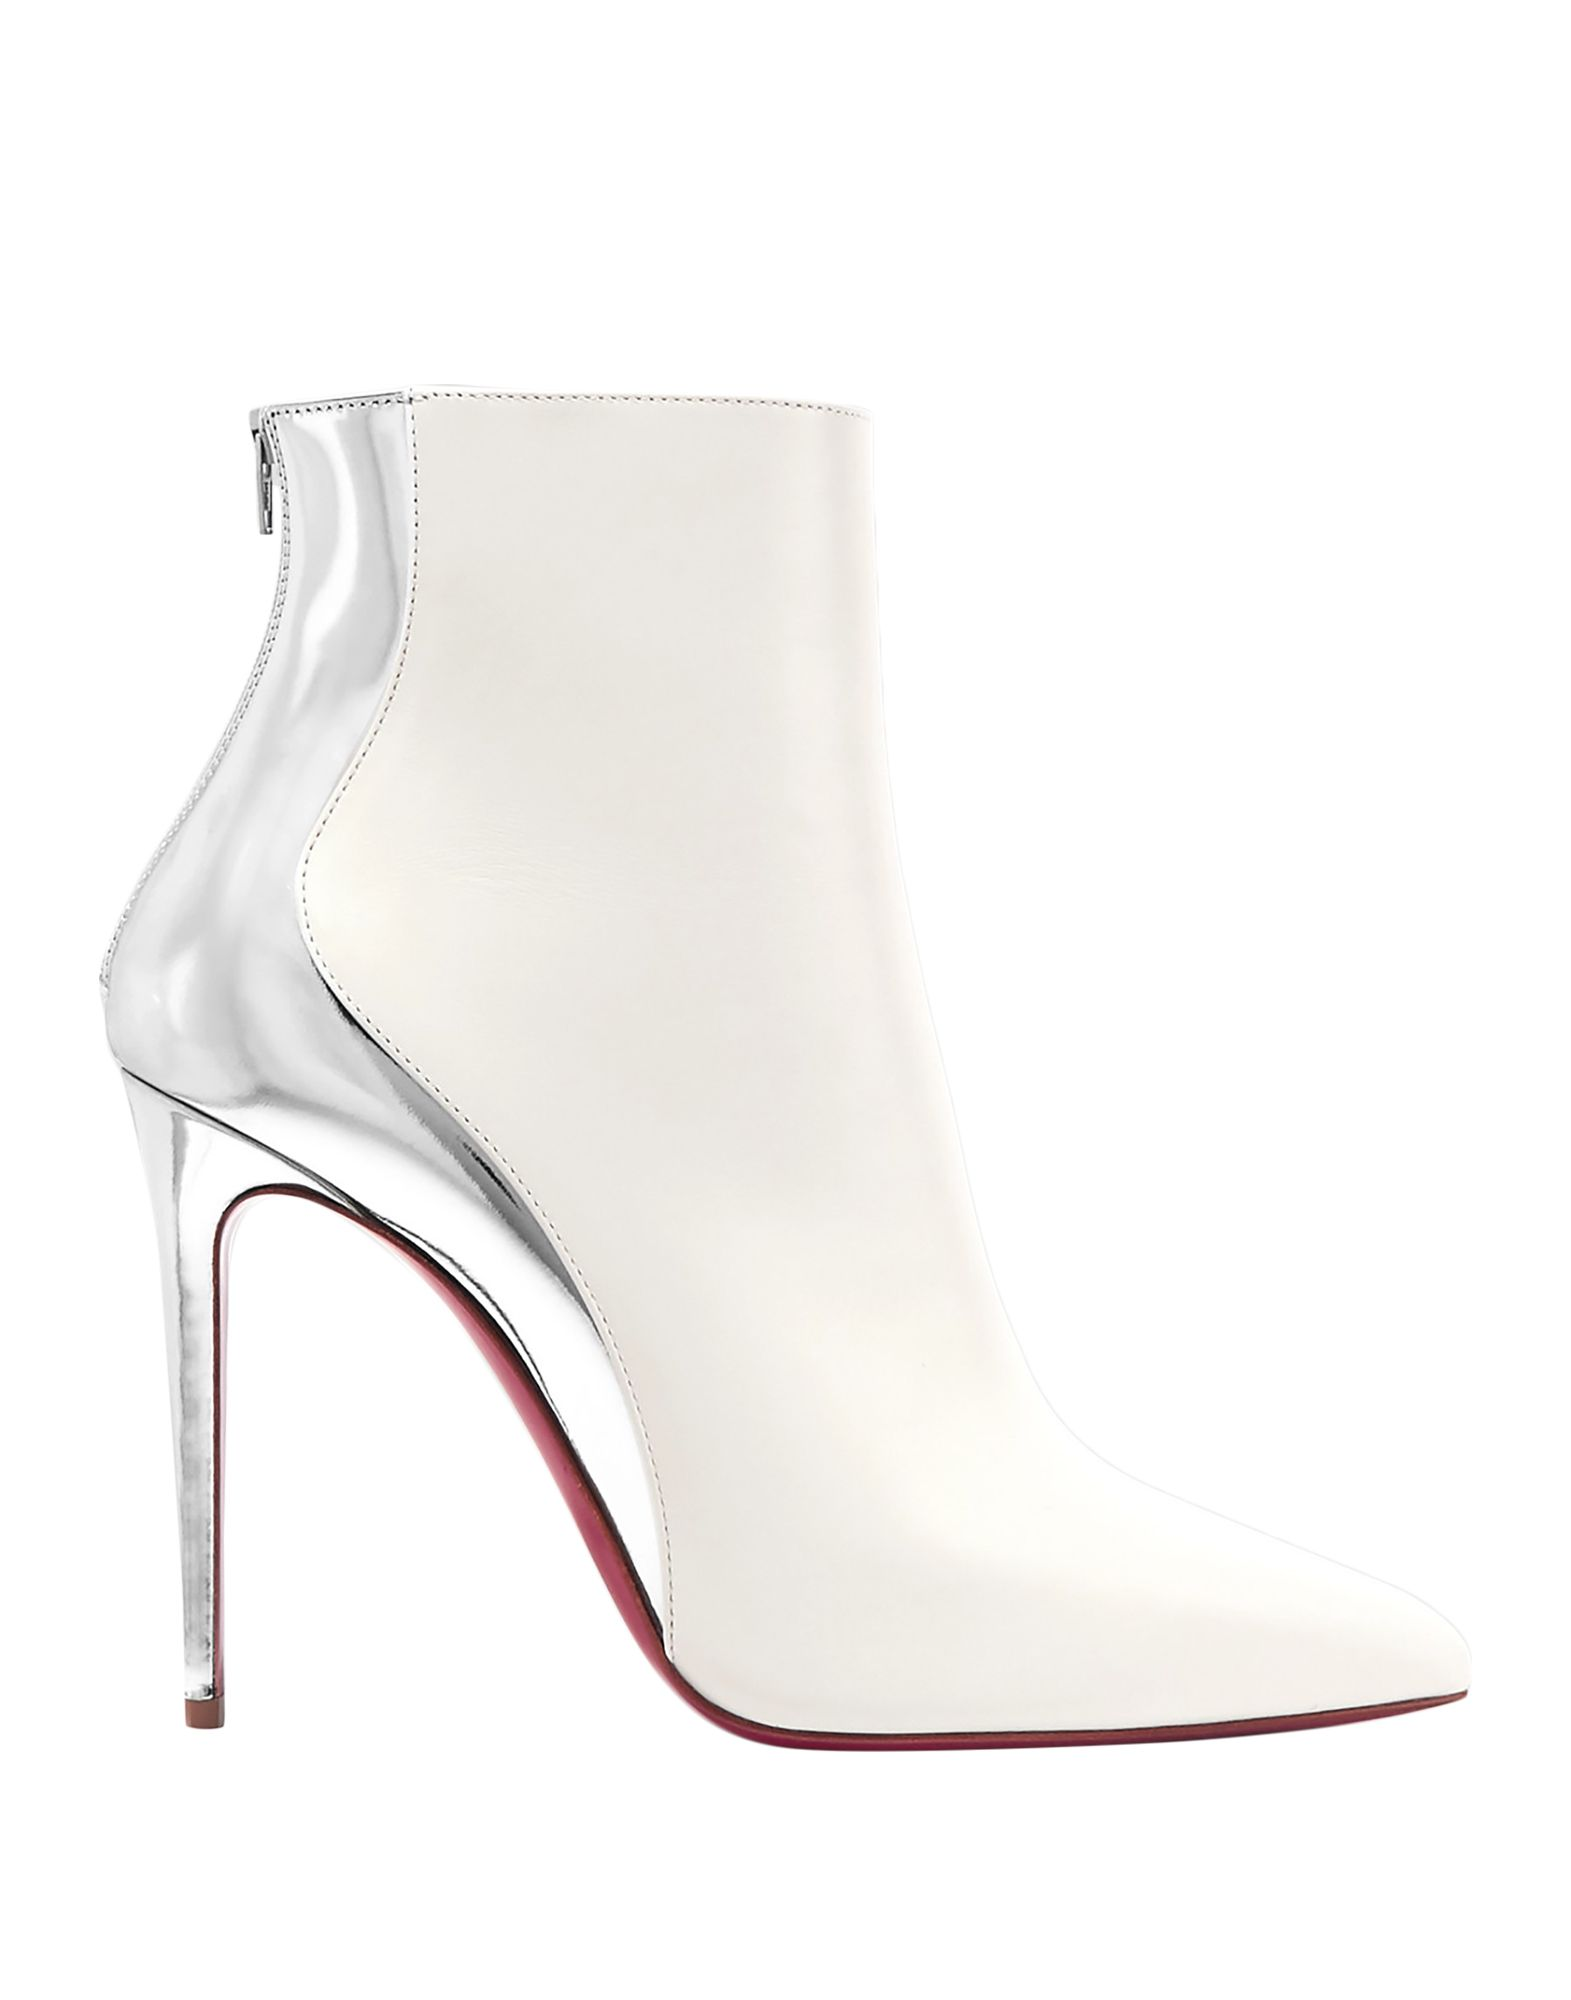 CHRISTIAN LOUBOUTIN Ankle boots. laminated effect, no appliqués, two-tone, zipper closure, narrow toeline, spike heel, covered heel, leather lining, leather/rubber sole, contains non-textile parts of animal origin, small sized. Calfskin